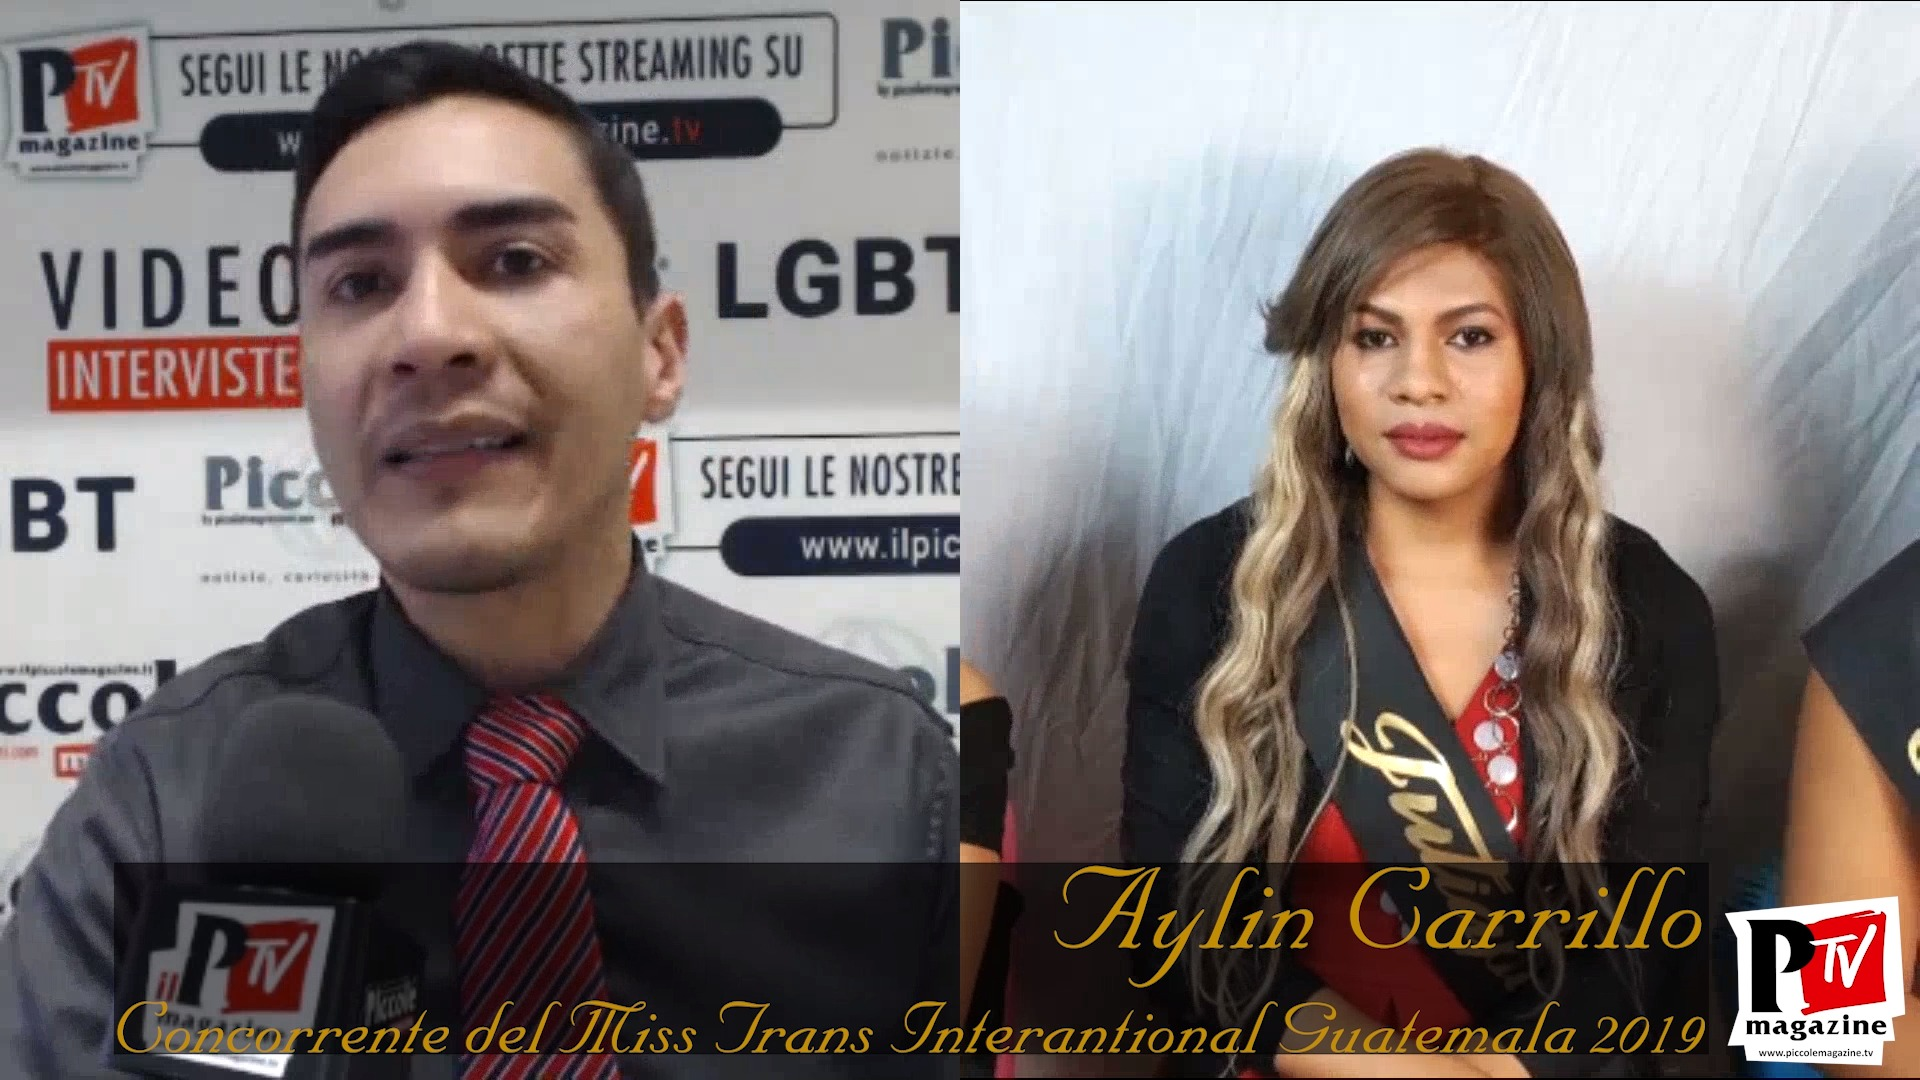 Entrevista a Aylin Carrillo, participante en el concurso Miss Trans International Guatemala 2019